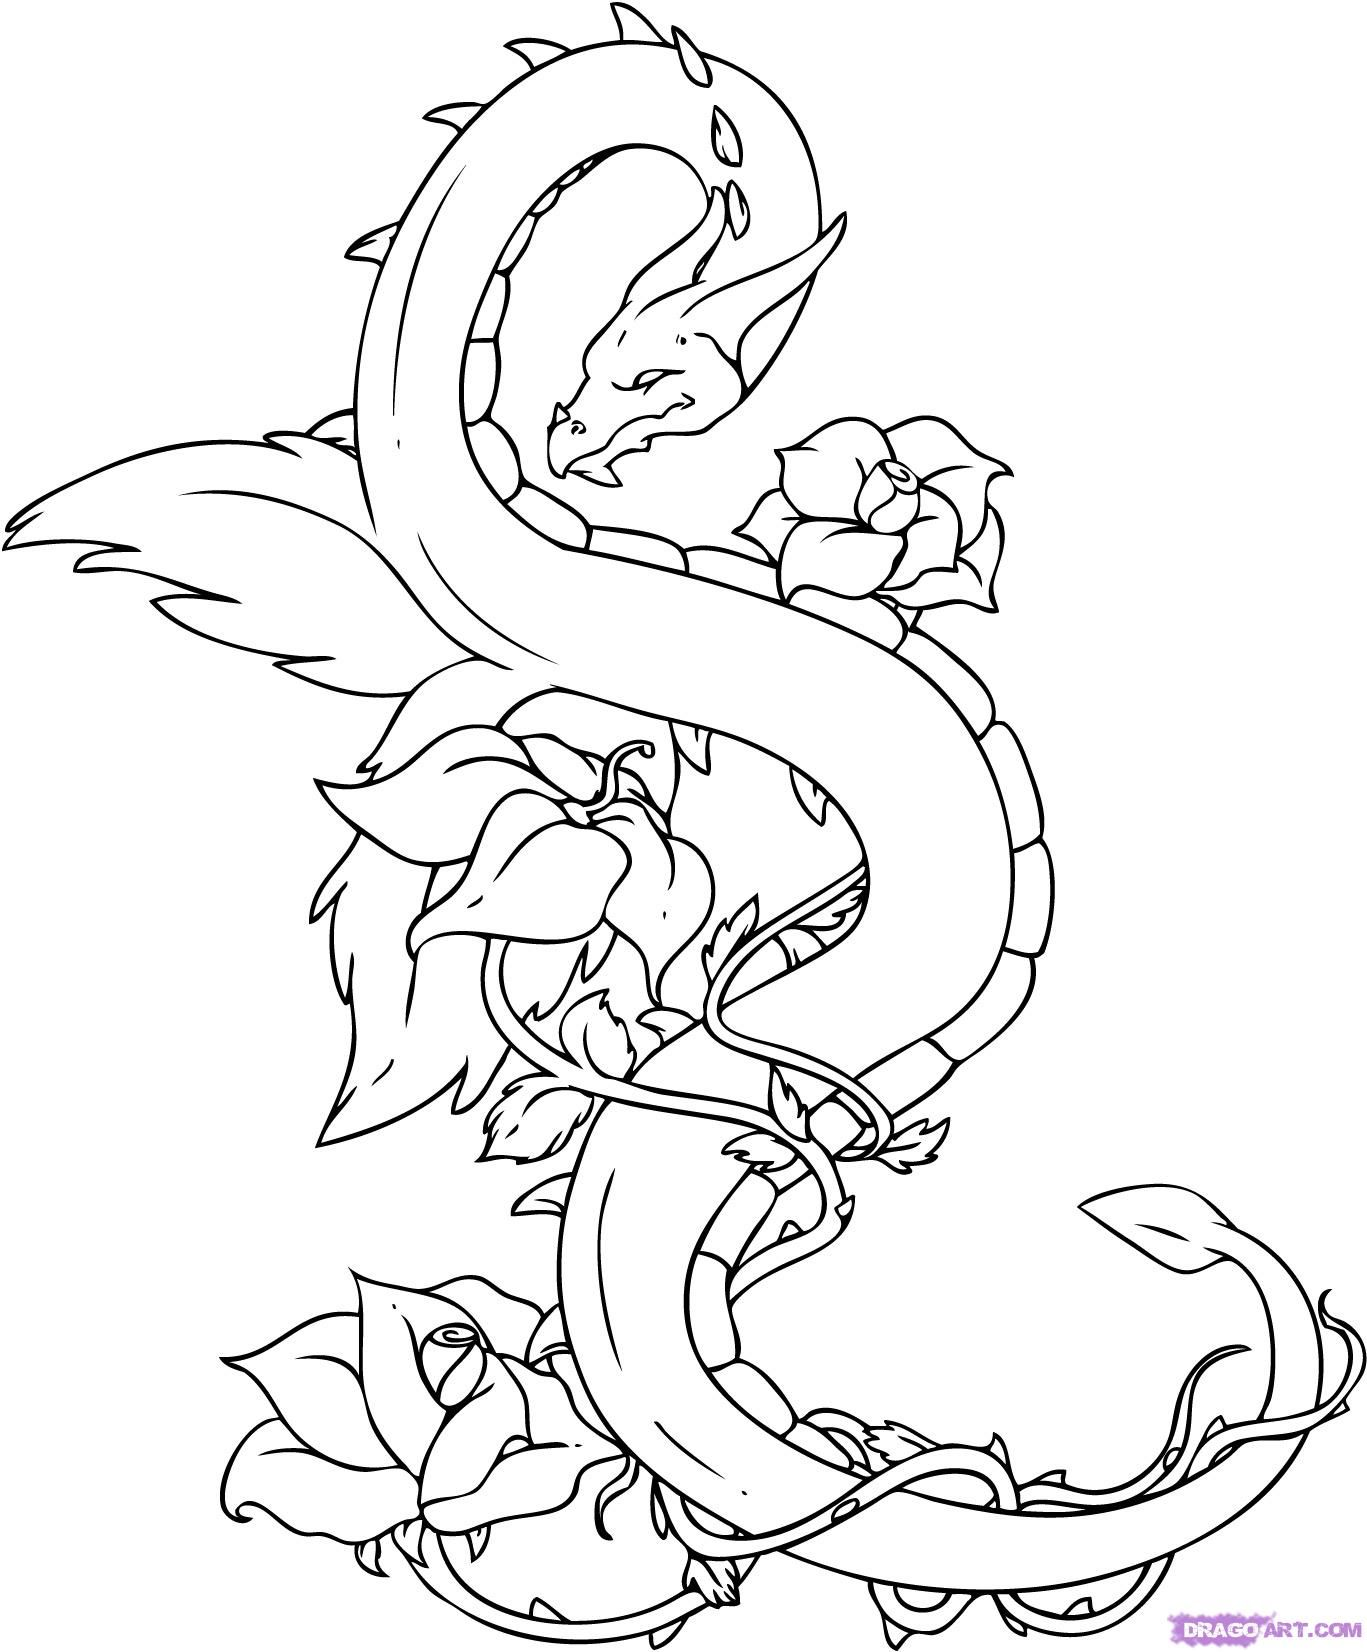 How to draw a dragon art 3 5th pinterest dragons tattoo and how to draw a dragon ccuart Images